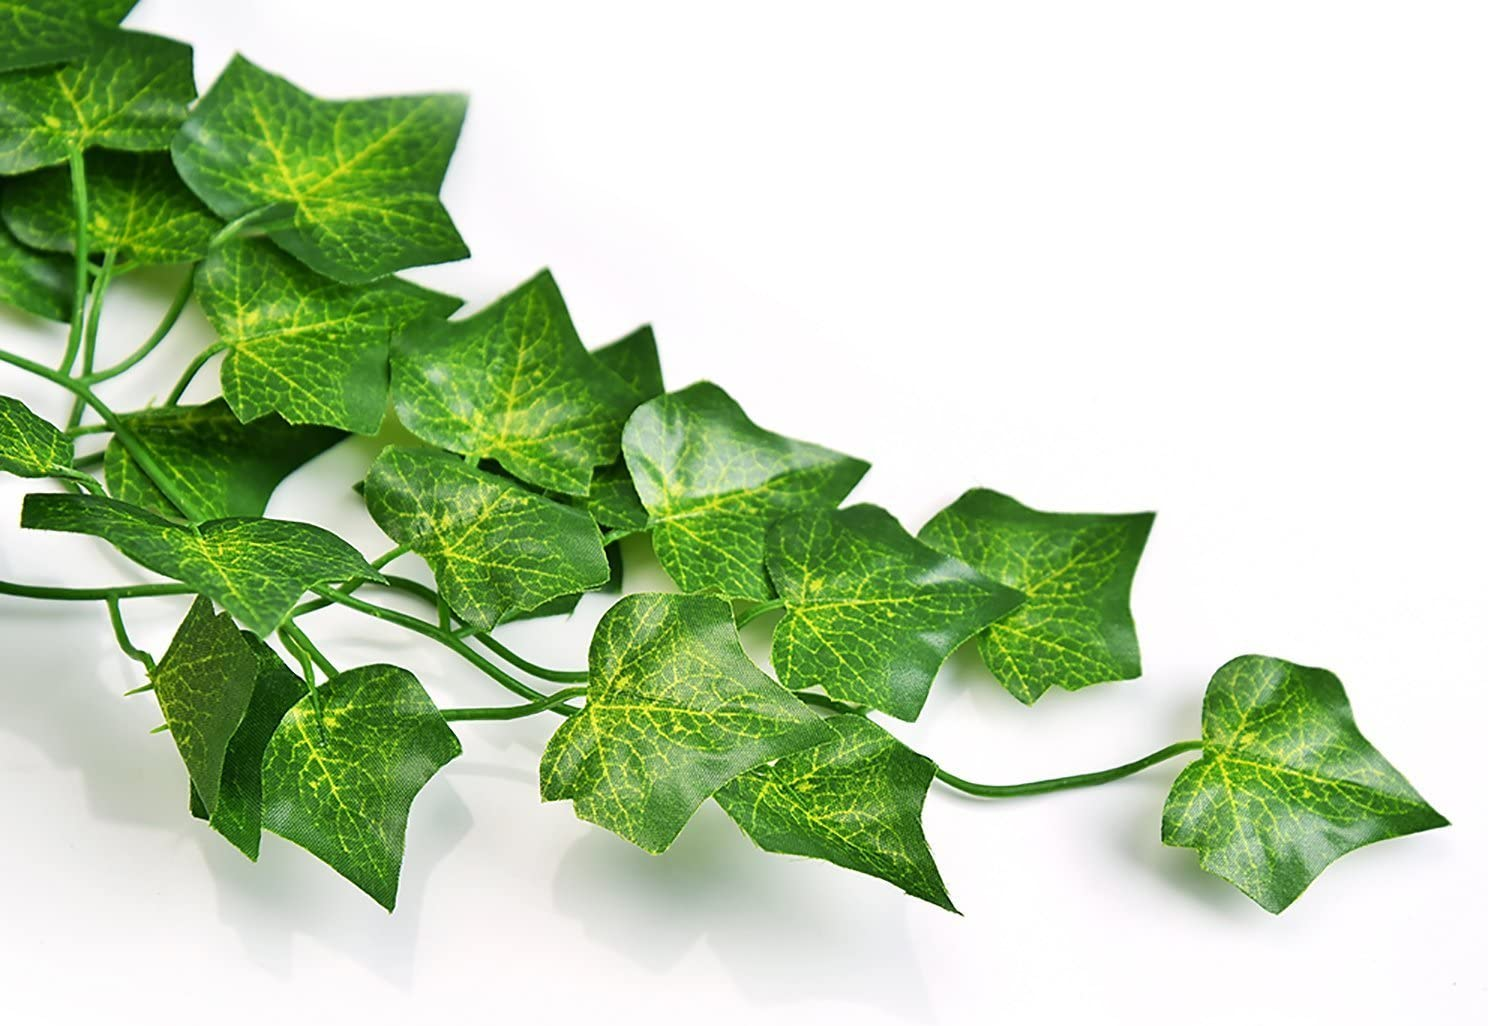 Unilove 156 feet Fake Foliage Garland Leaves Decoration Artificial Greenery Ivy Vine Plants for Home Decor Indoor Outdoors Ivy Leaves